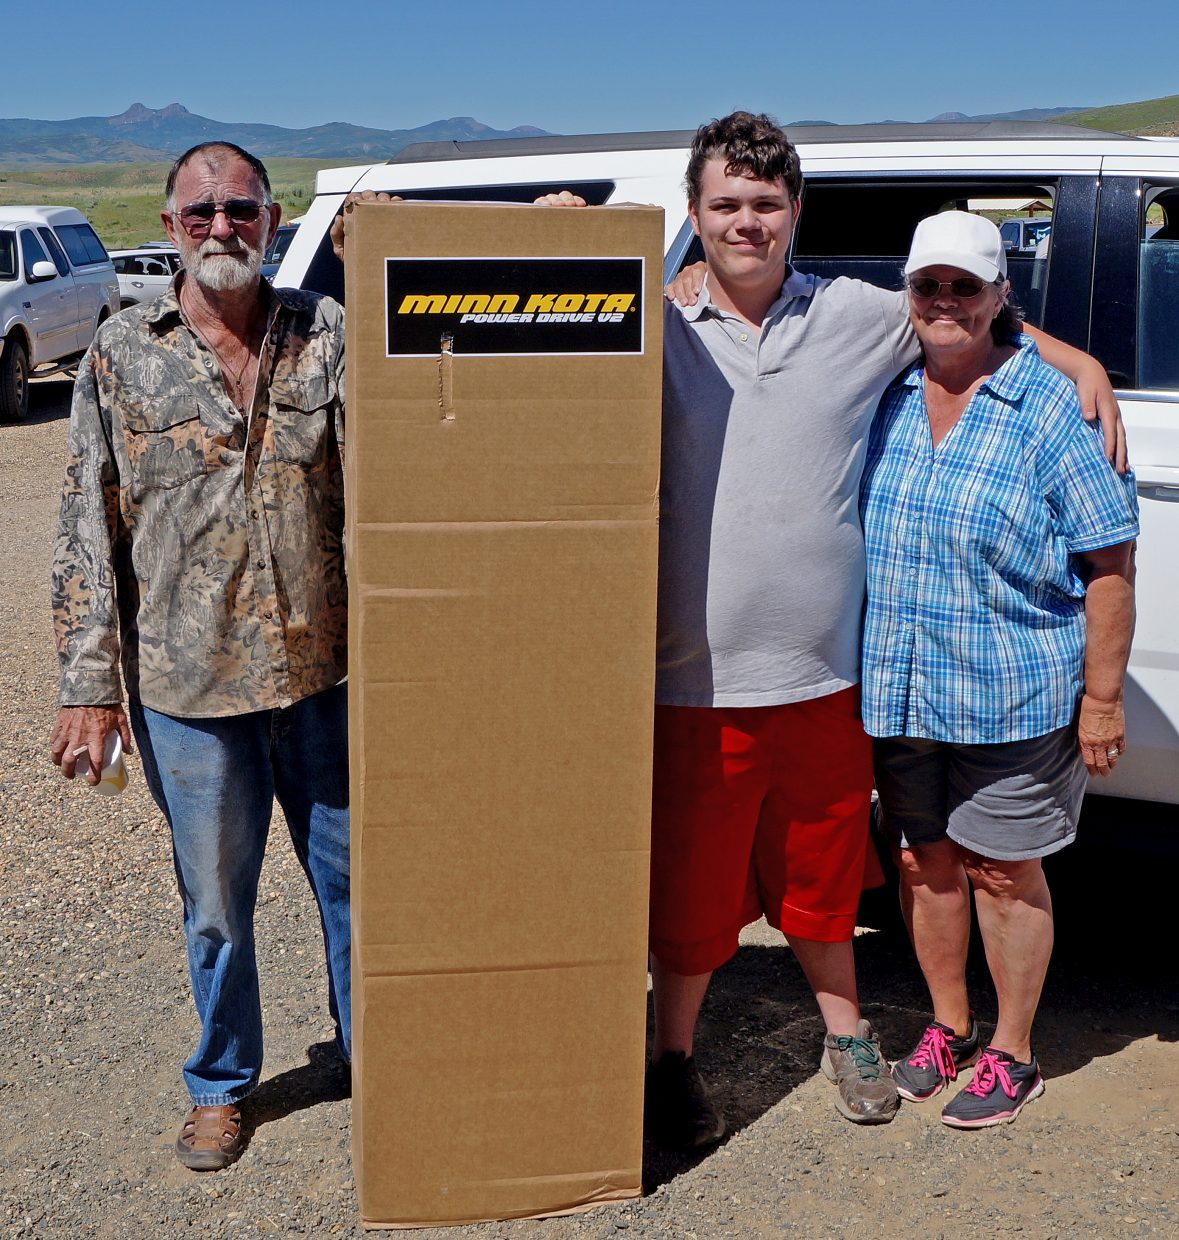 Samuel Newman, 18, with his grandfather, Gabriel Daigle and grandmother Joy Daigle, shows off his new trolling motor, which he won in the tournament.